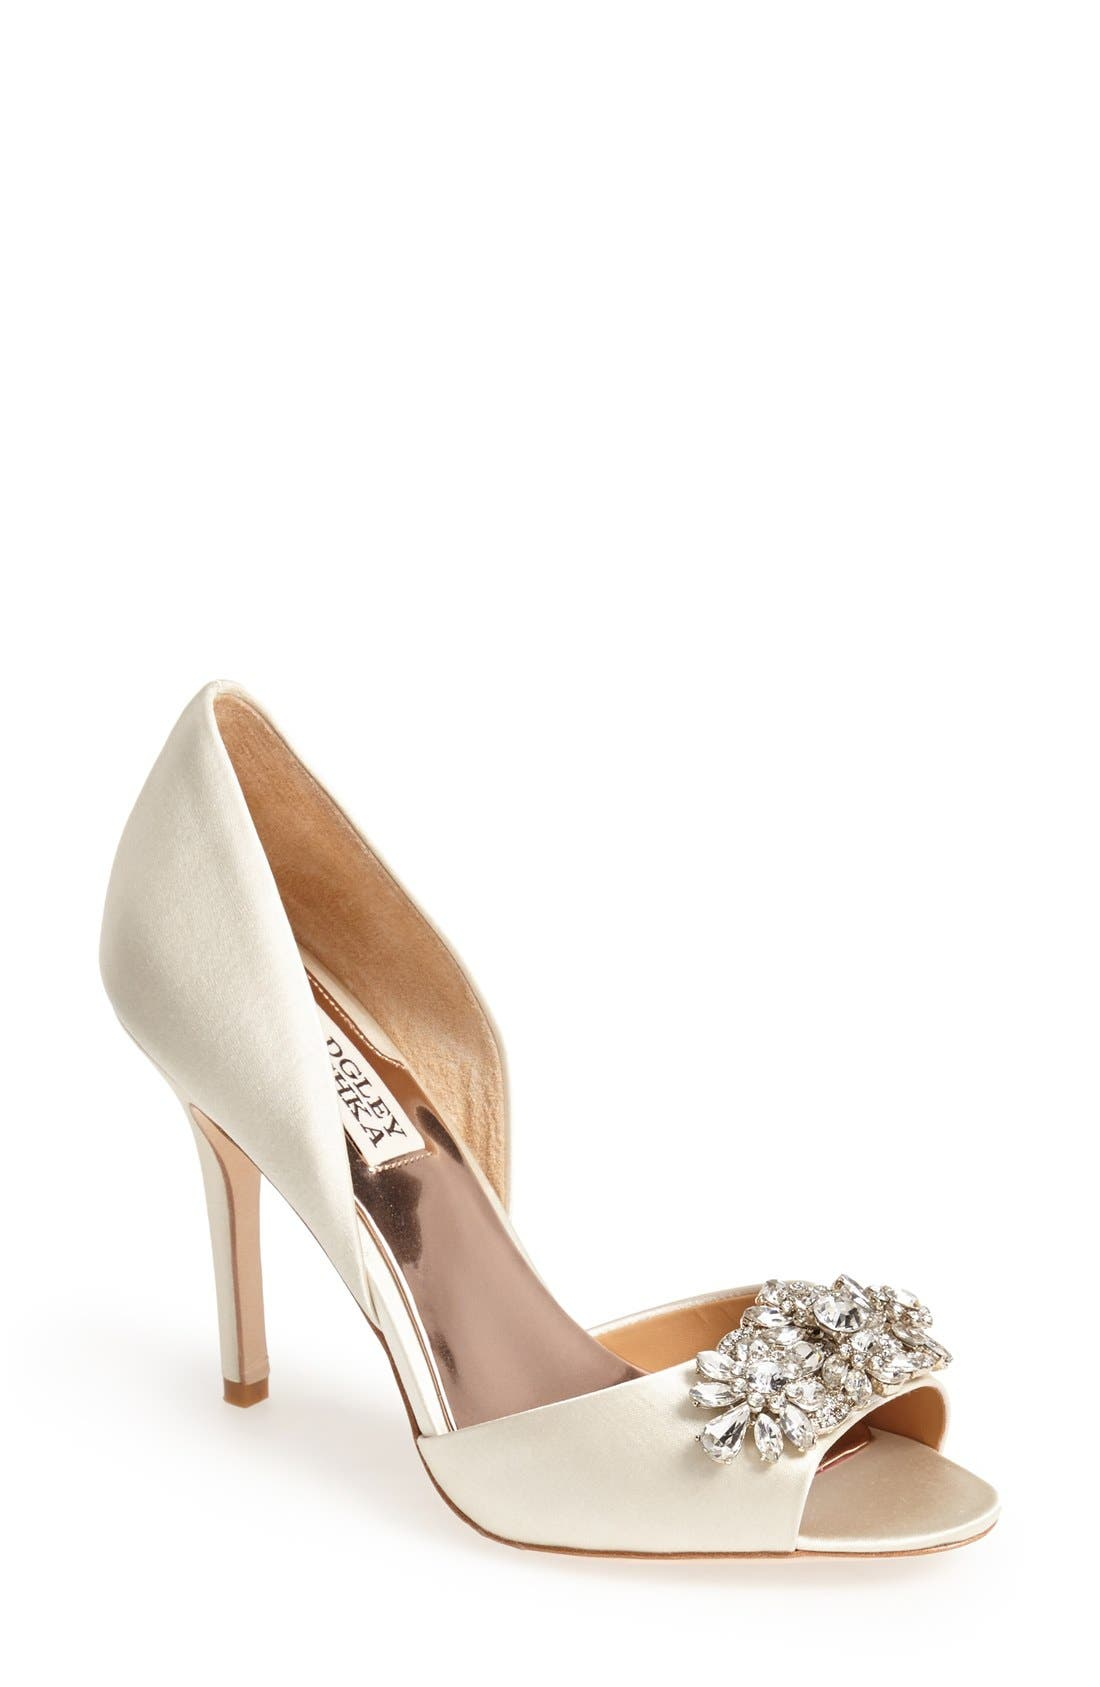 Badgley Mischka 'Giana' Satin d'Orsay Pump,                             Main thumbnail 1, color,                             901